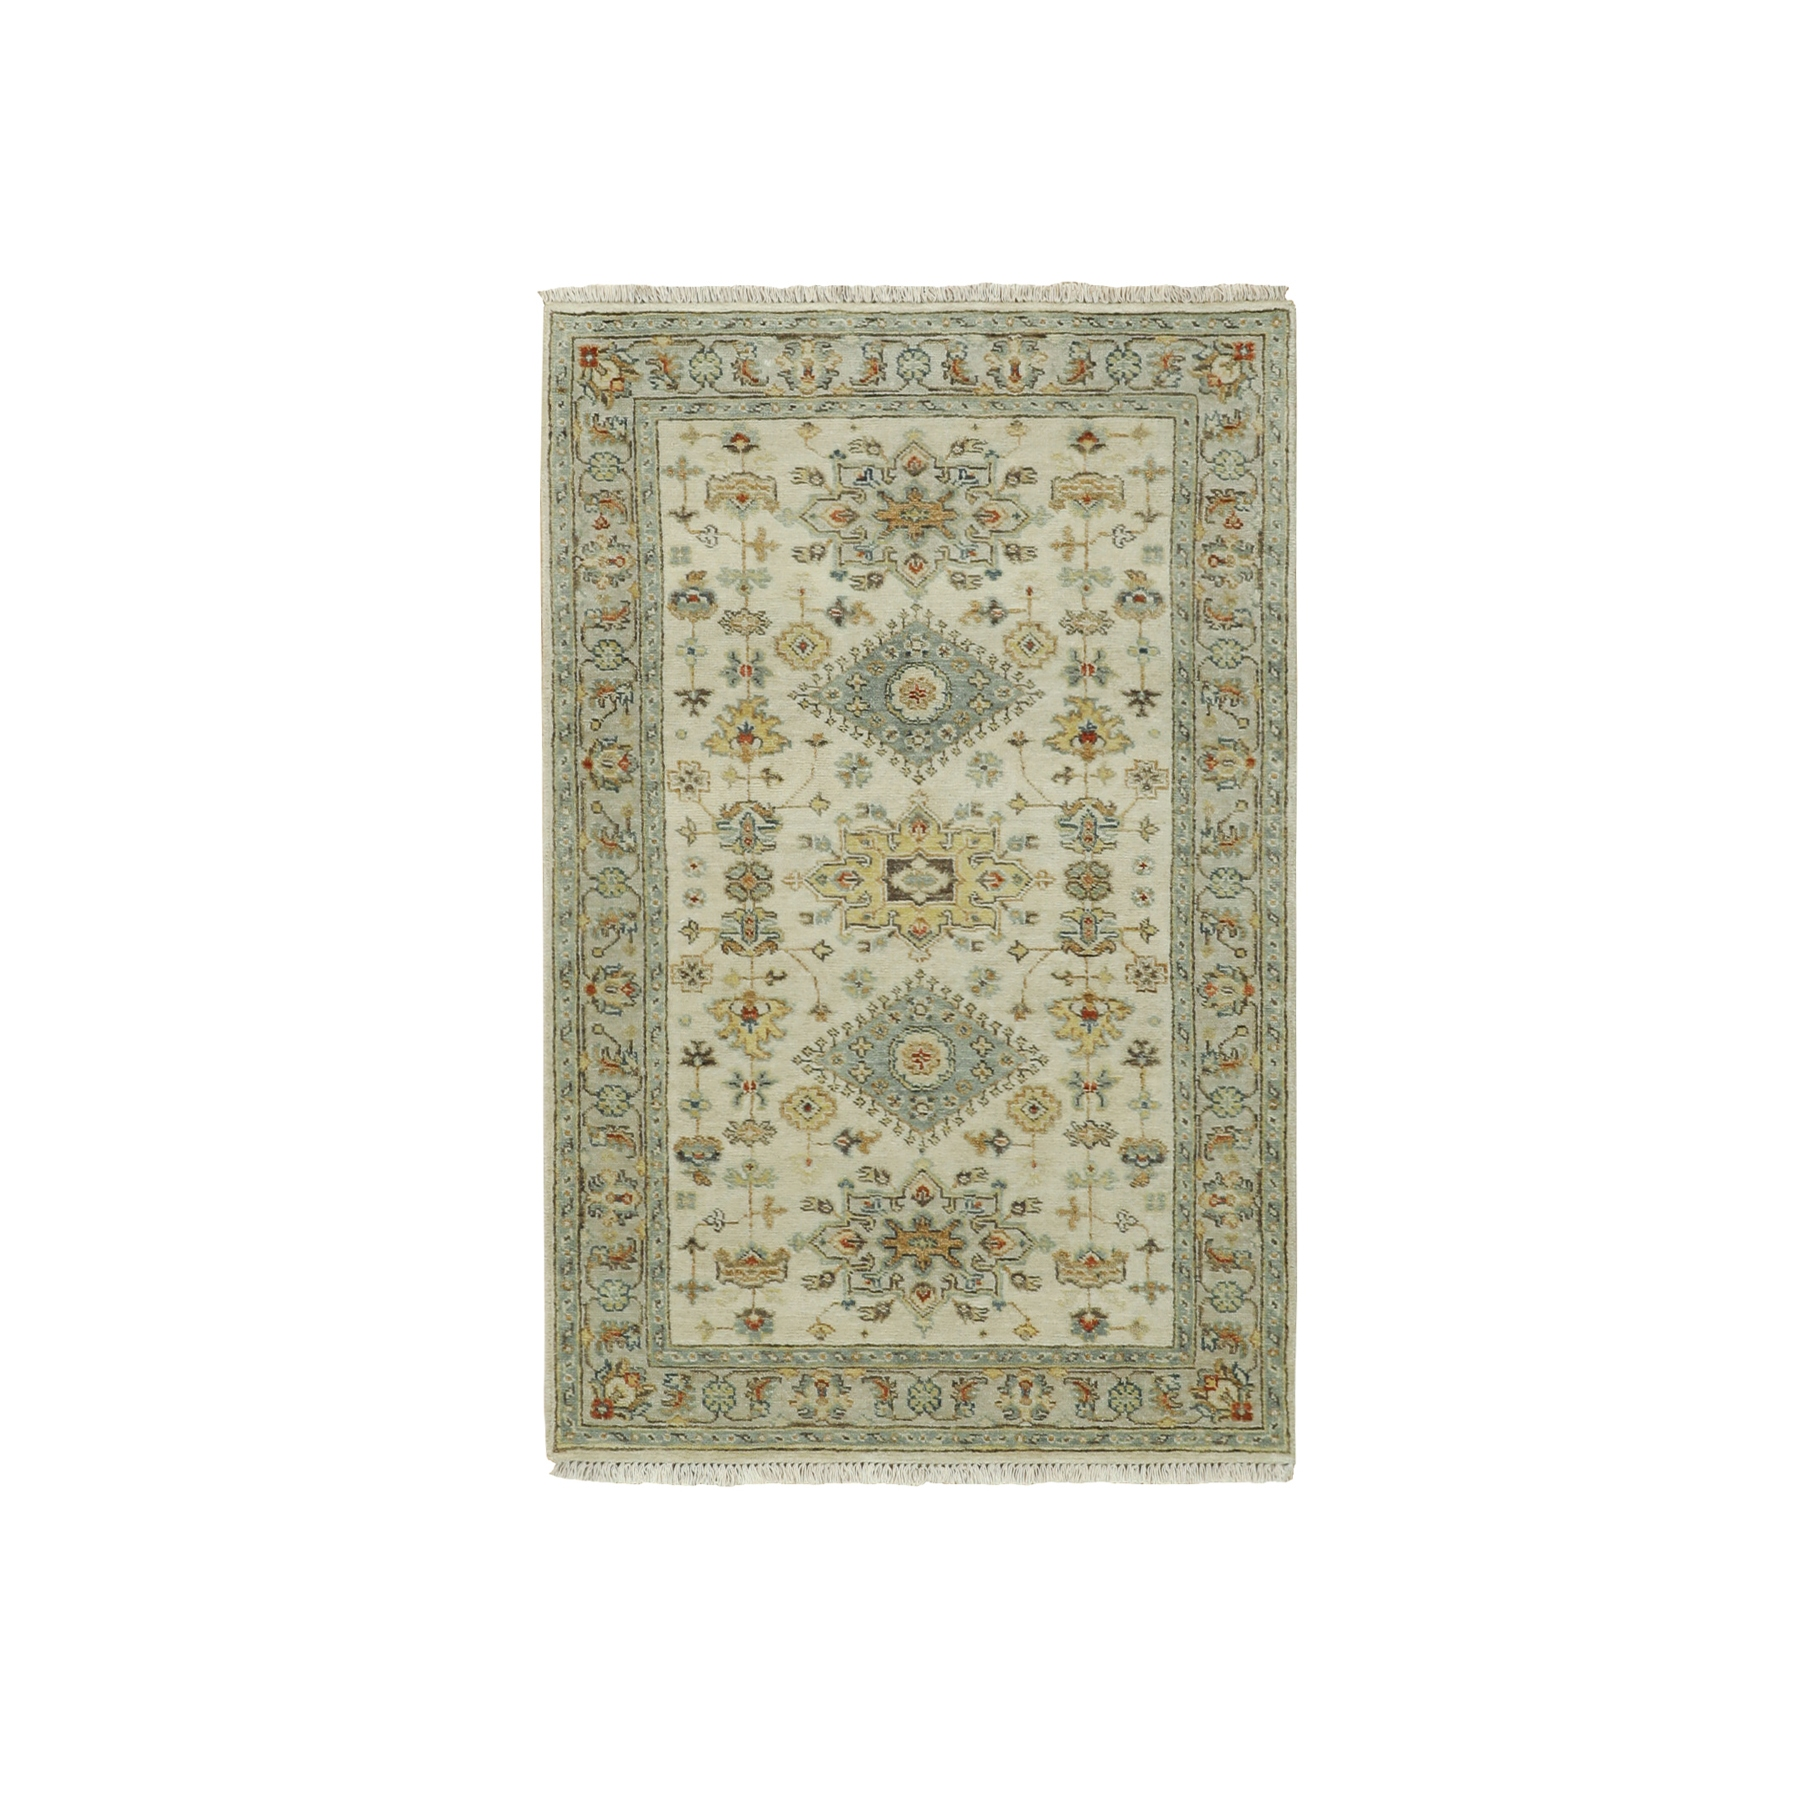 3'x5' Pure Wool Ivory Karajeh Design With Motifs Hand Woven Oriental Rug